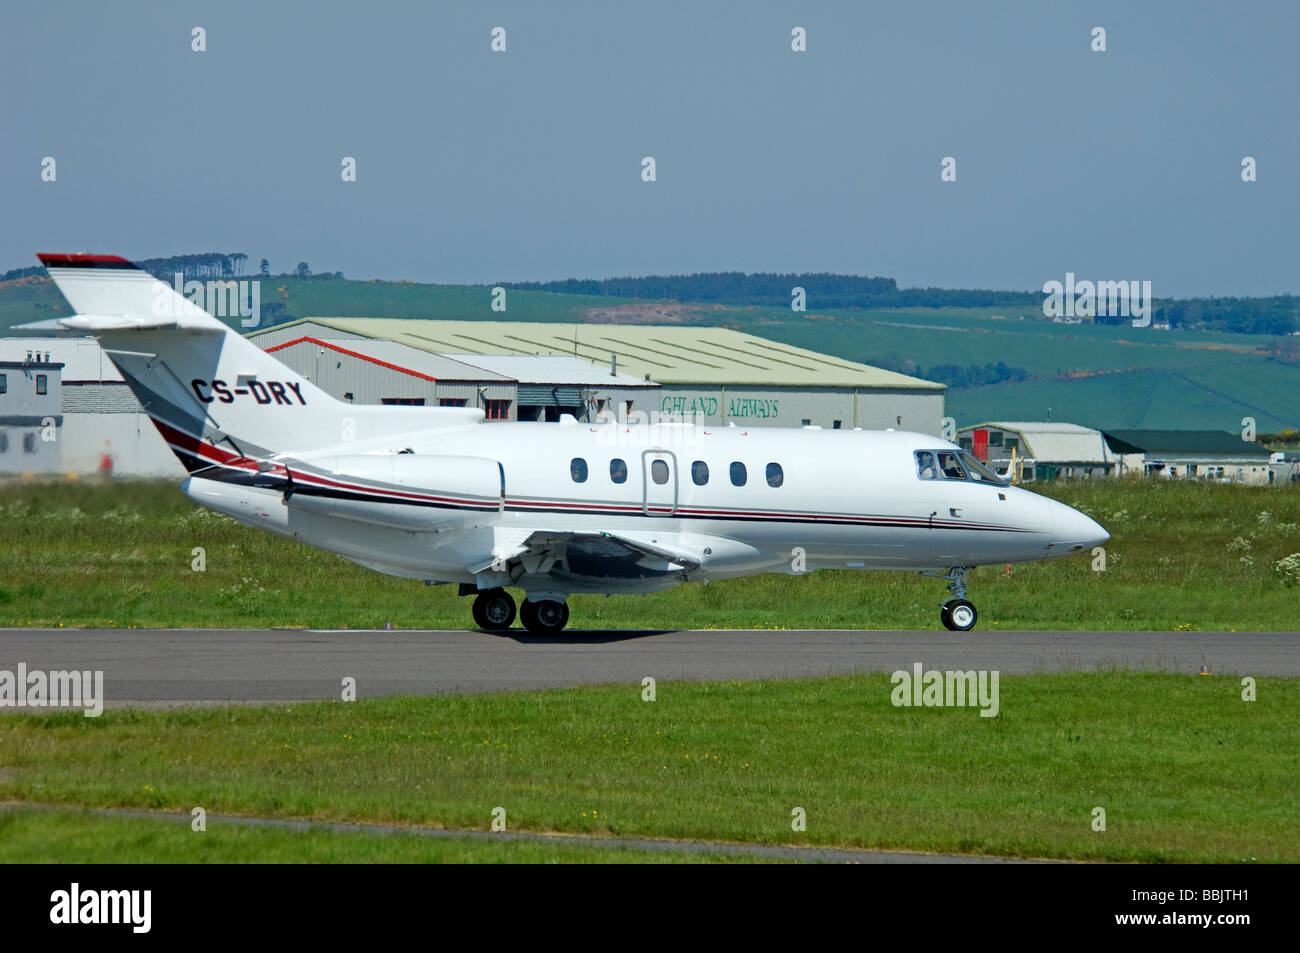 Raytheon Hawker 800XP Business Jet Aircraft at Inverness Airport Scotland.   SCO 2480 - Stock Image